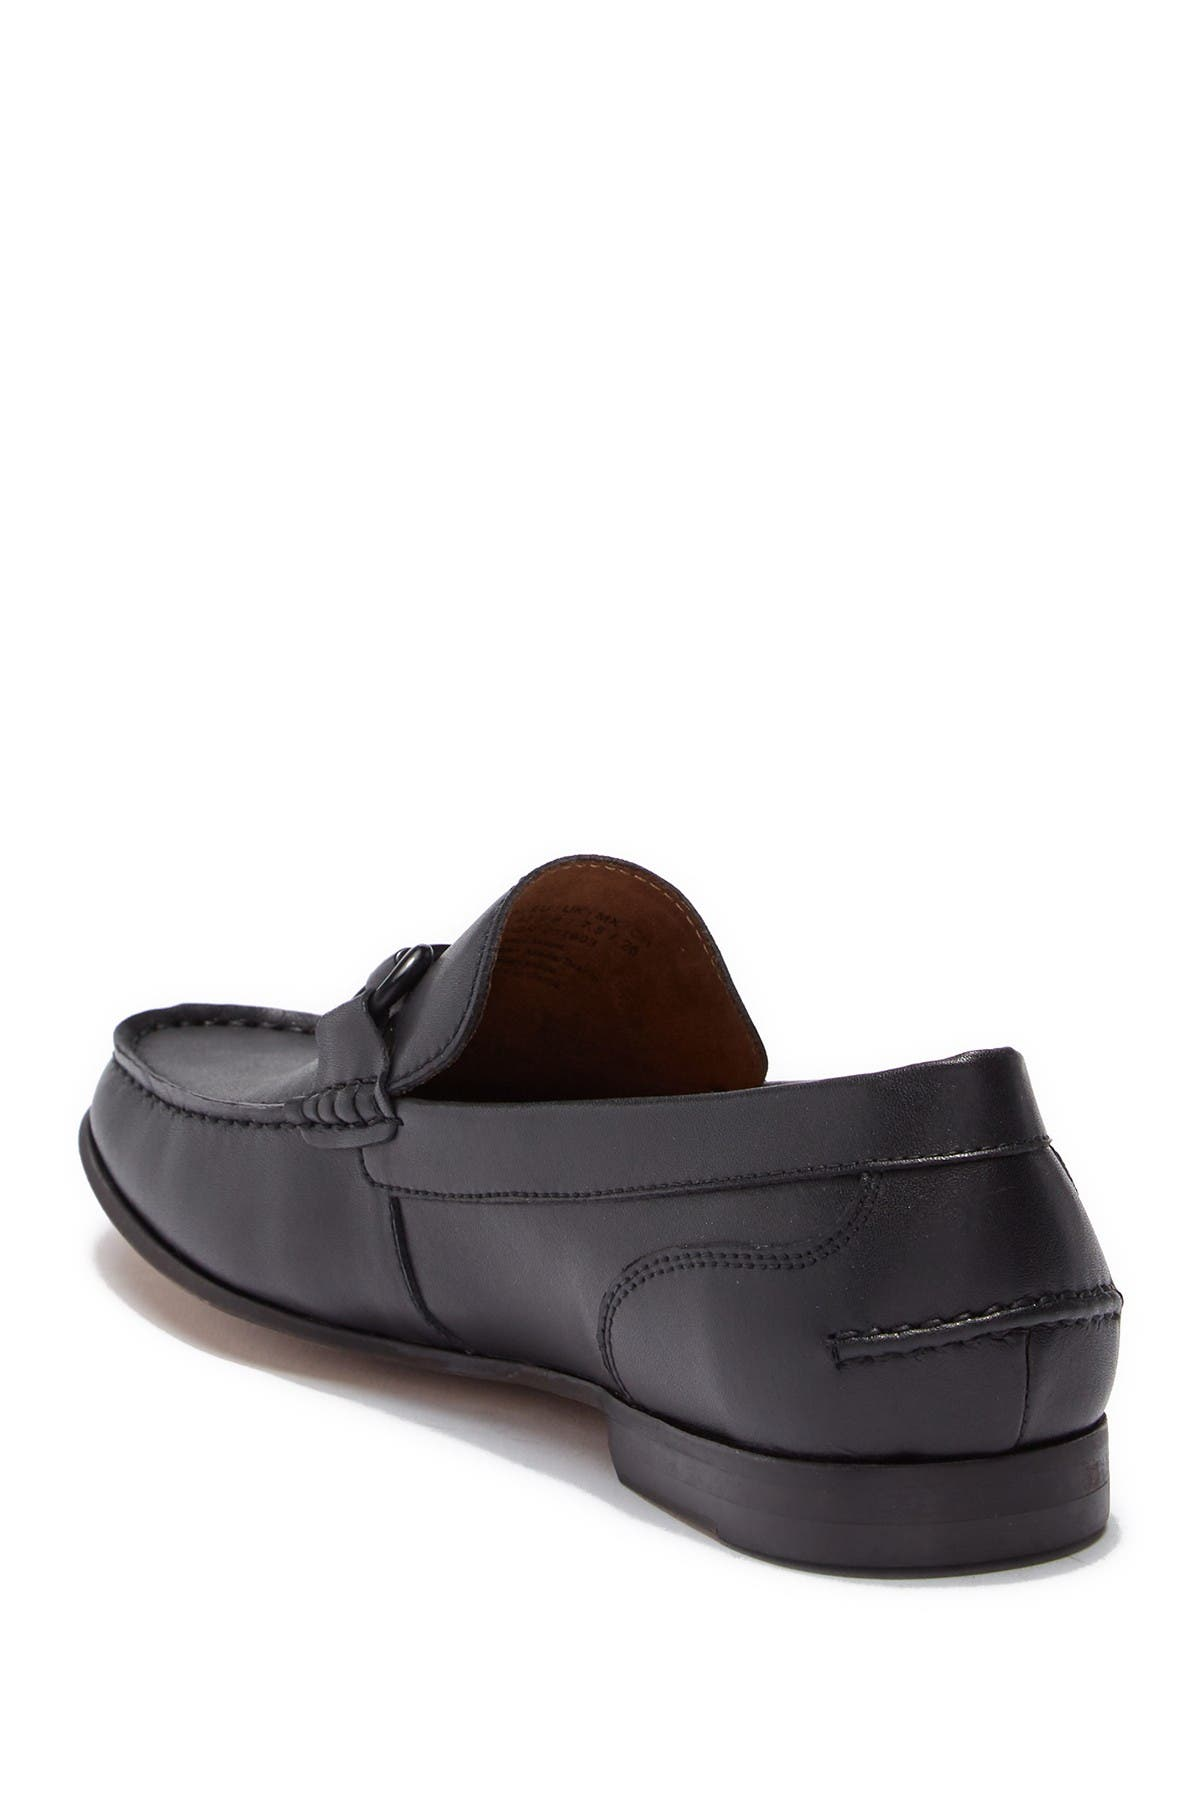 Image of Kenneth Cole Reaction Crespo  Bit Loafer